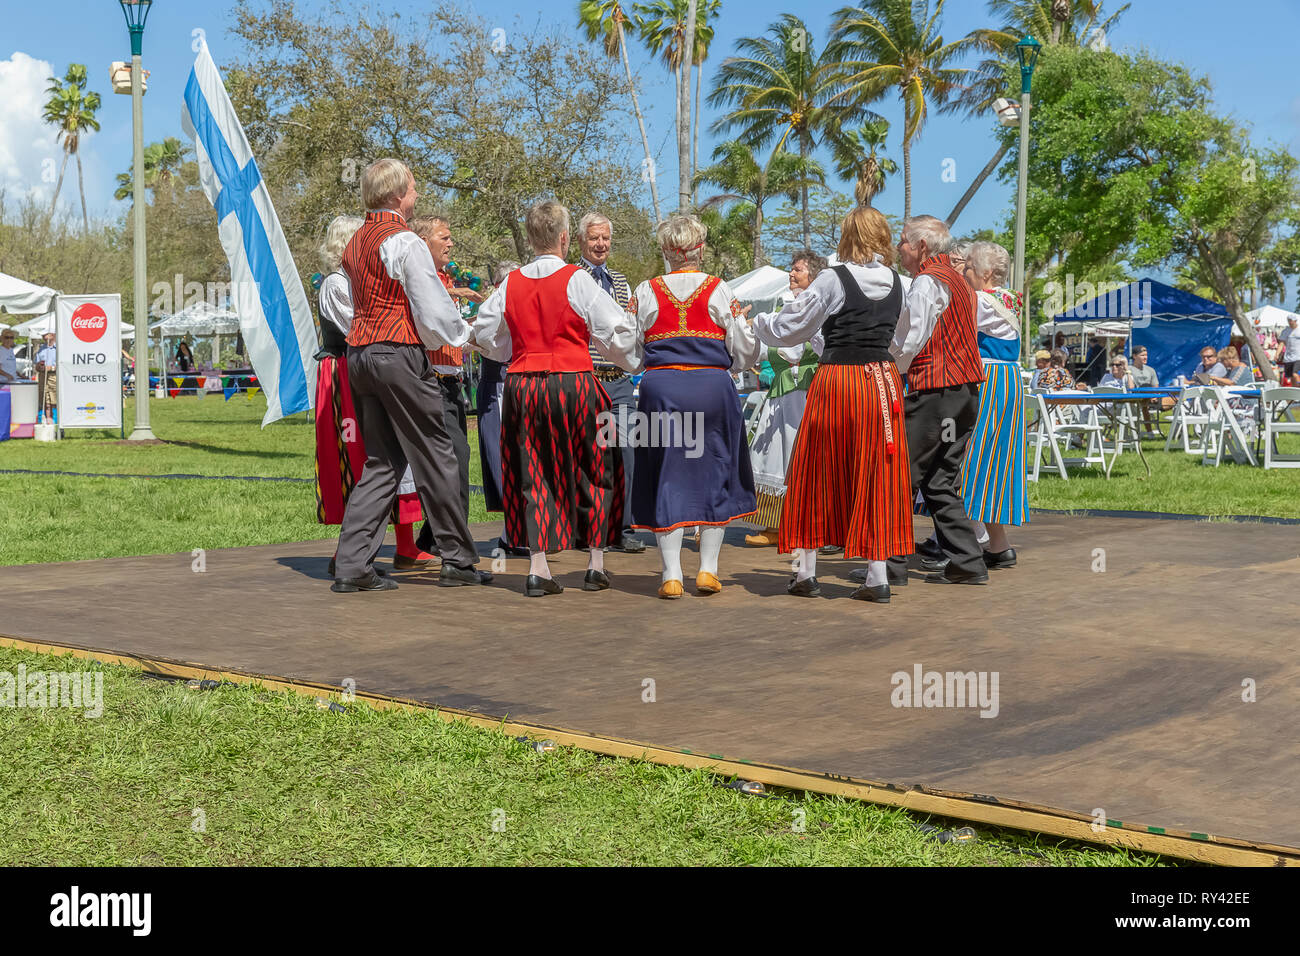 Lake Worth, Florida, USA March 3, 2019,​ Midnight Sun Festival Celebrating Finnish Culture. The couples are dressed in traditional Finnish clothing. - Stock Image